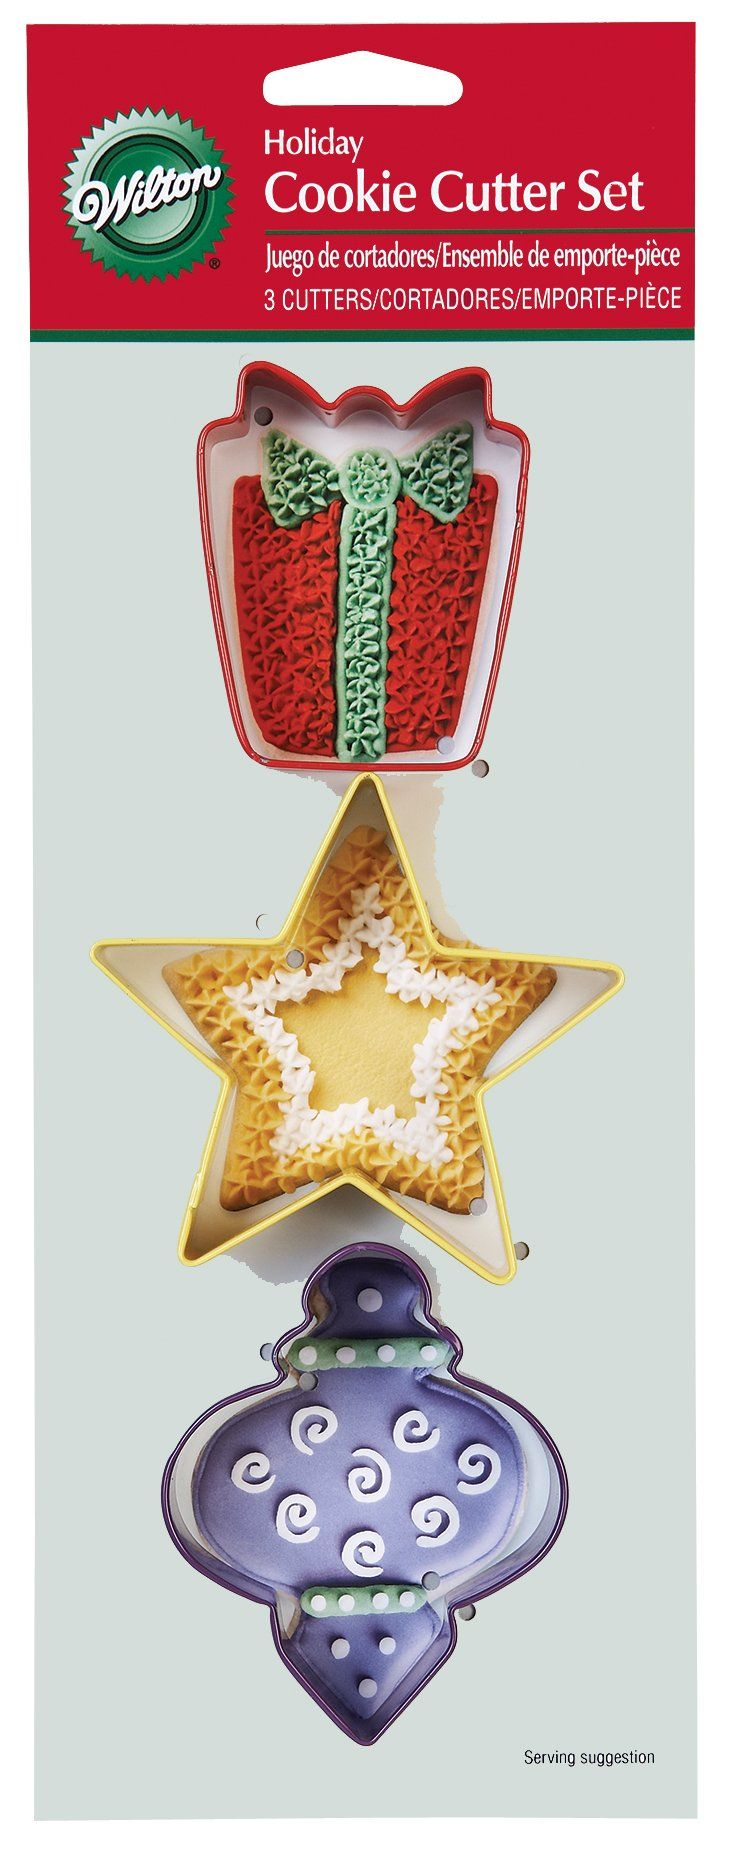 "Wilton Holiday Cookie Cutter 3 Piece Set: 2.5"" x 2"" gift, 3.25"" x 3.5"" star and 3"" x 2.5"" ornament"